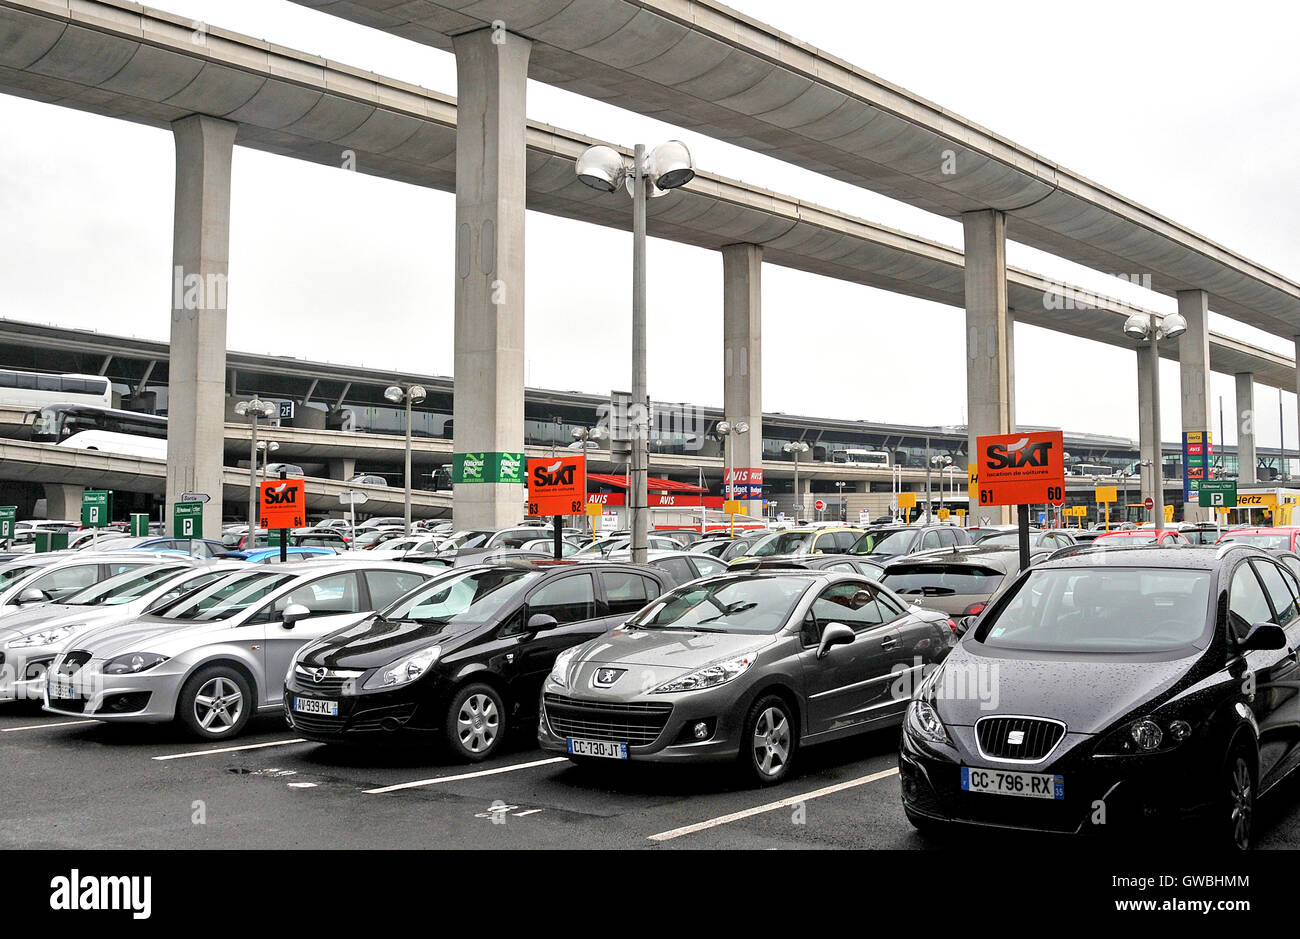 airport rent car stock photos airport rent car stock images alamy. Black Bedroom Furniture Sets. Home Design Ideas